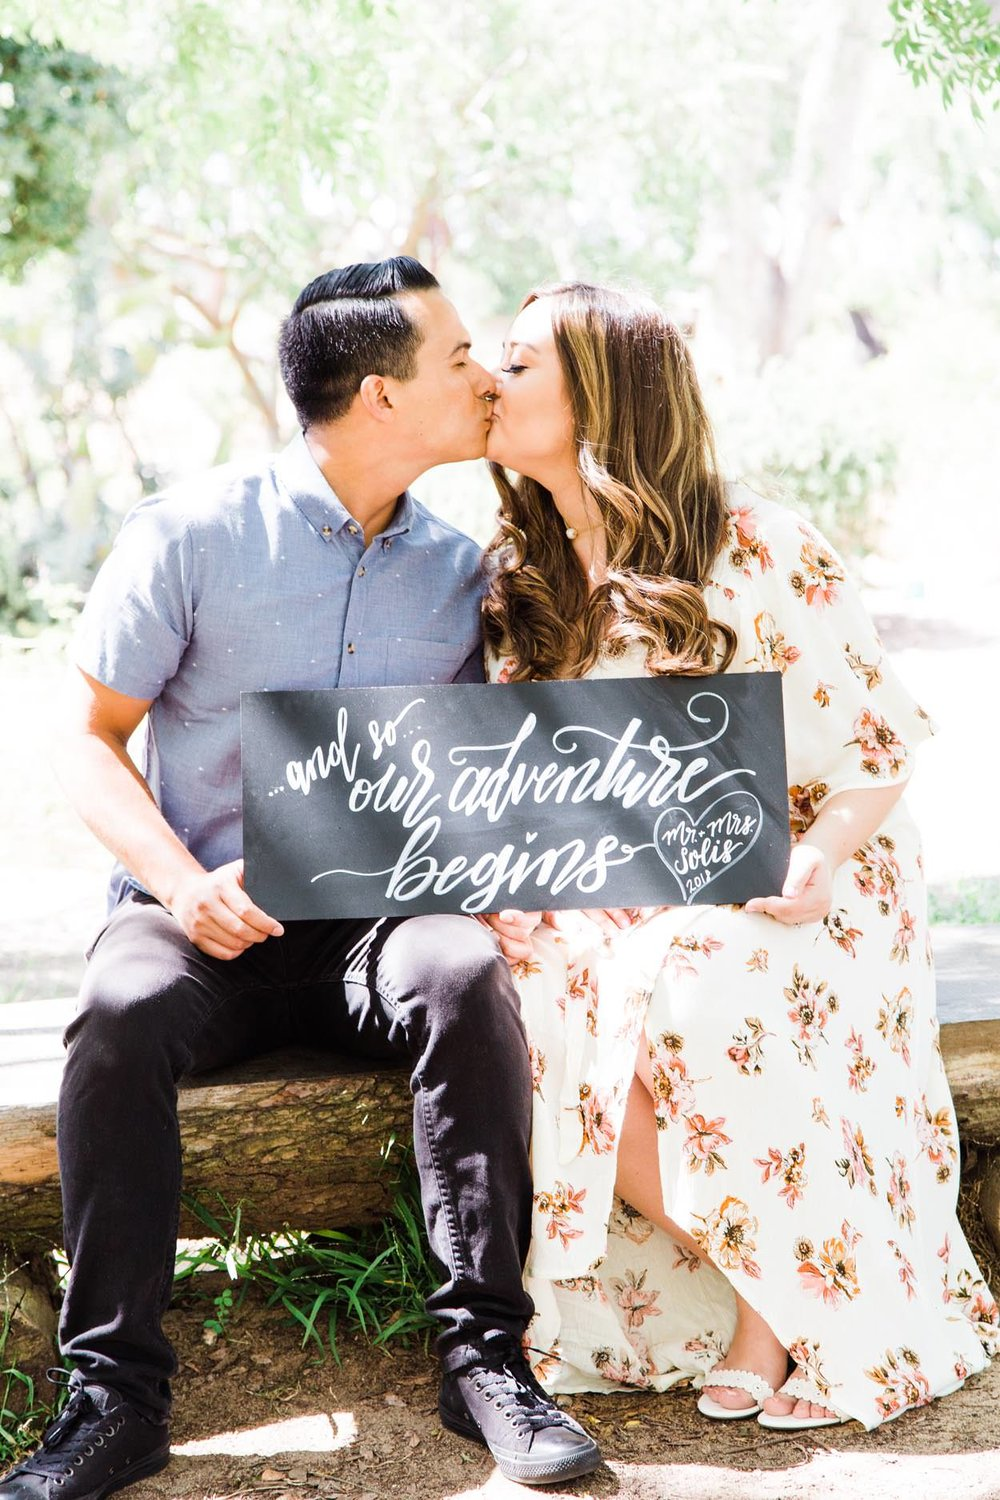 Wilderness Park in Redondo Beach Engagement Photography Session from South Bay family and wedding portrait photography business Daniel Doty Photography.